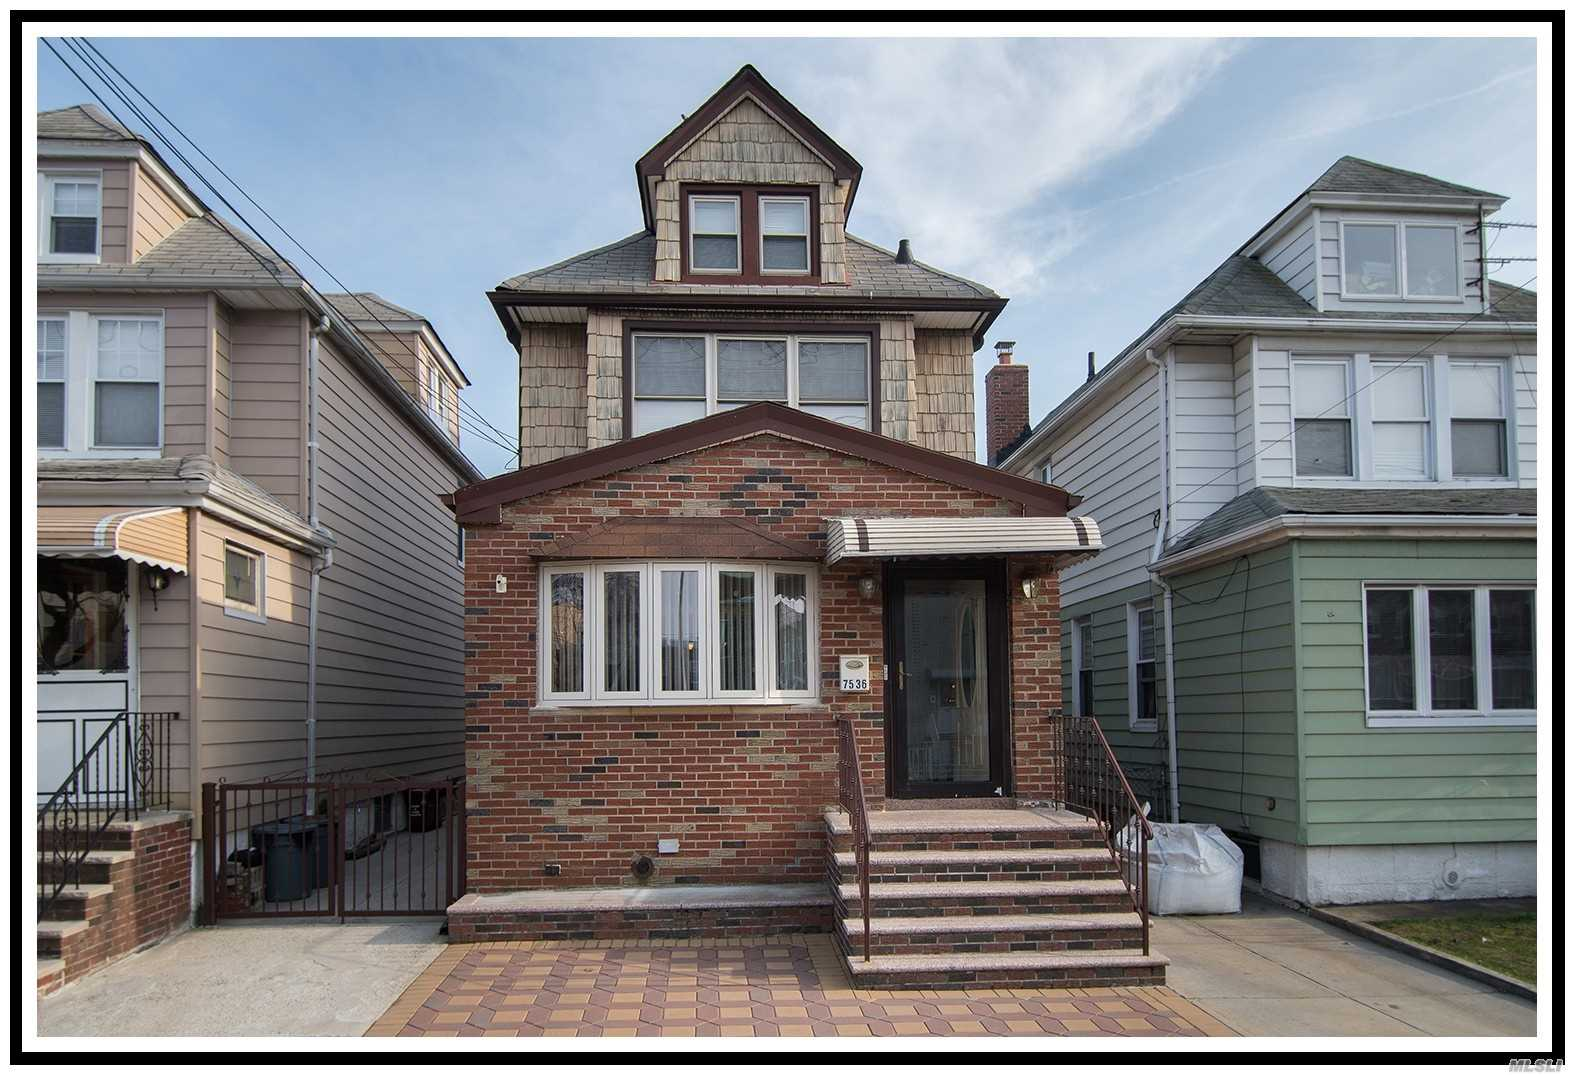 Two Family Home For Sale, Full Of Possibilities In Prime Location & The Home Does Not Disappoint. Detached Legal 2 Family Property Offers 2 Duplexes, Private Driveway & Garage. Main Apartment 1st Fl & Basement W/ Huge Living Room/Dining Space, Large Eat In Kitchen, 2 Bedrooms, Bathroom & Access To The Private Backyard. Hardwood Floors & Lots Of Natural Light. Upstairs Duplex Features Renovated Eat In Kitchen, Bathroom, Living Room, Large Master Bedroom & Attic. Close To All!